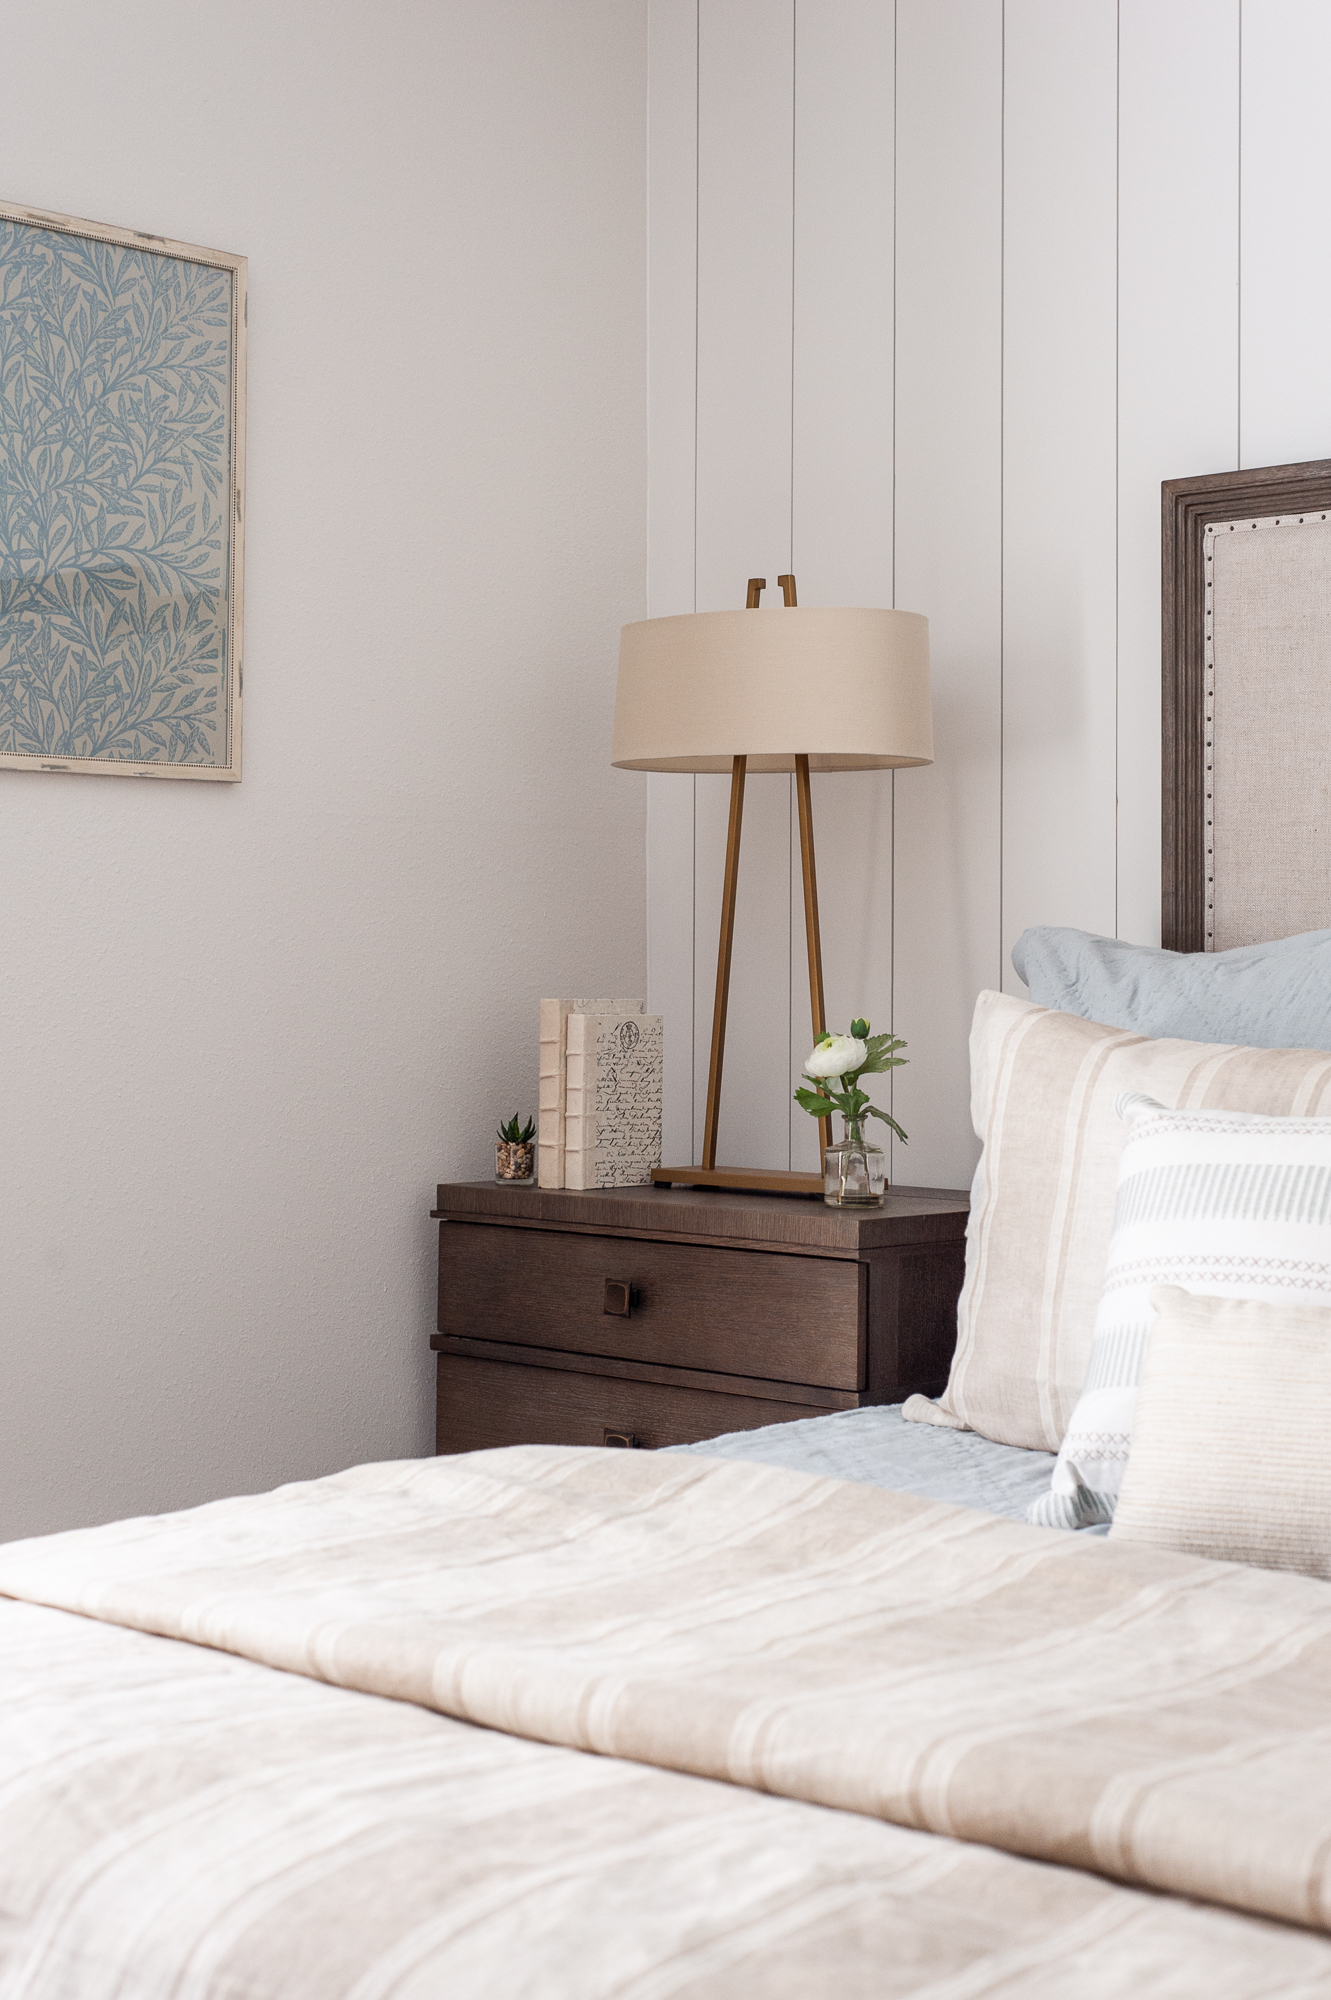 Micamy Design Studio_Model Home_Interior Design_Orchard Cove_Modern Coastal_Universal_Uttermost_Vertical Shiplap_Amity Home_Dutch Euros_Wendover_Gold Accents.jpg